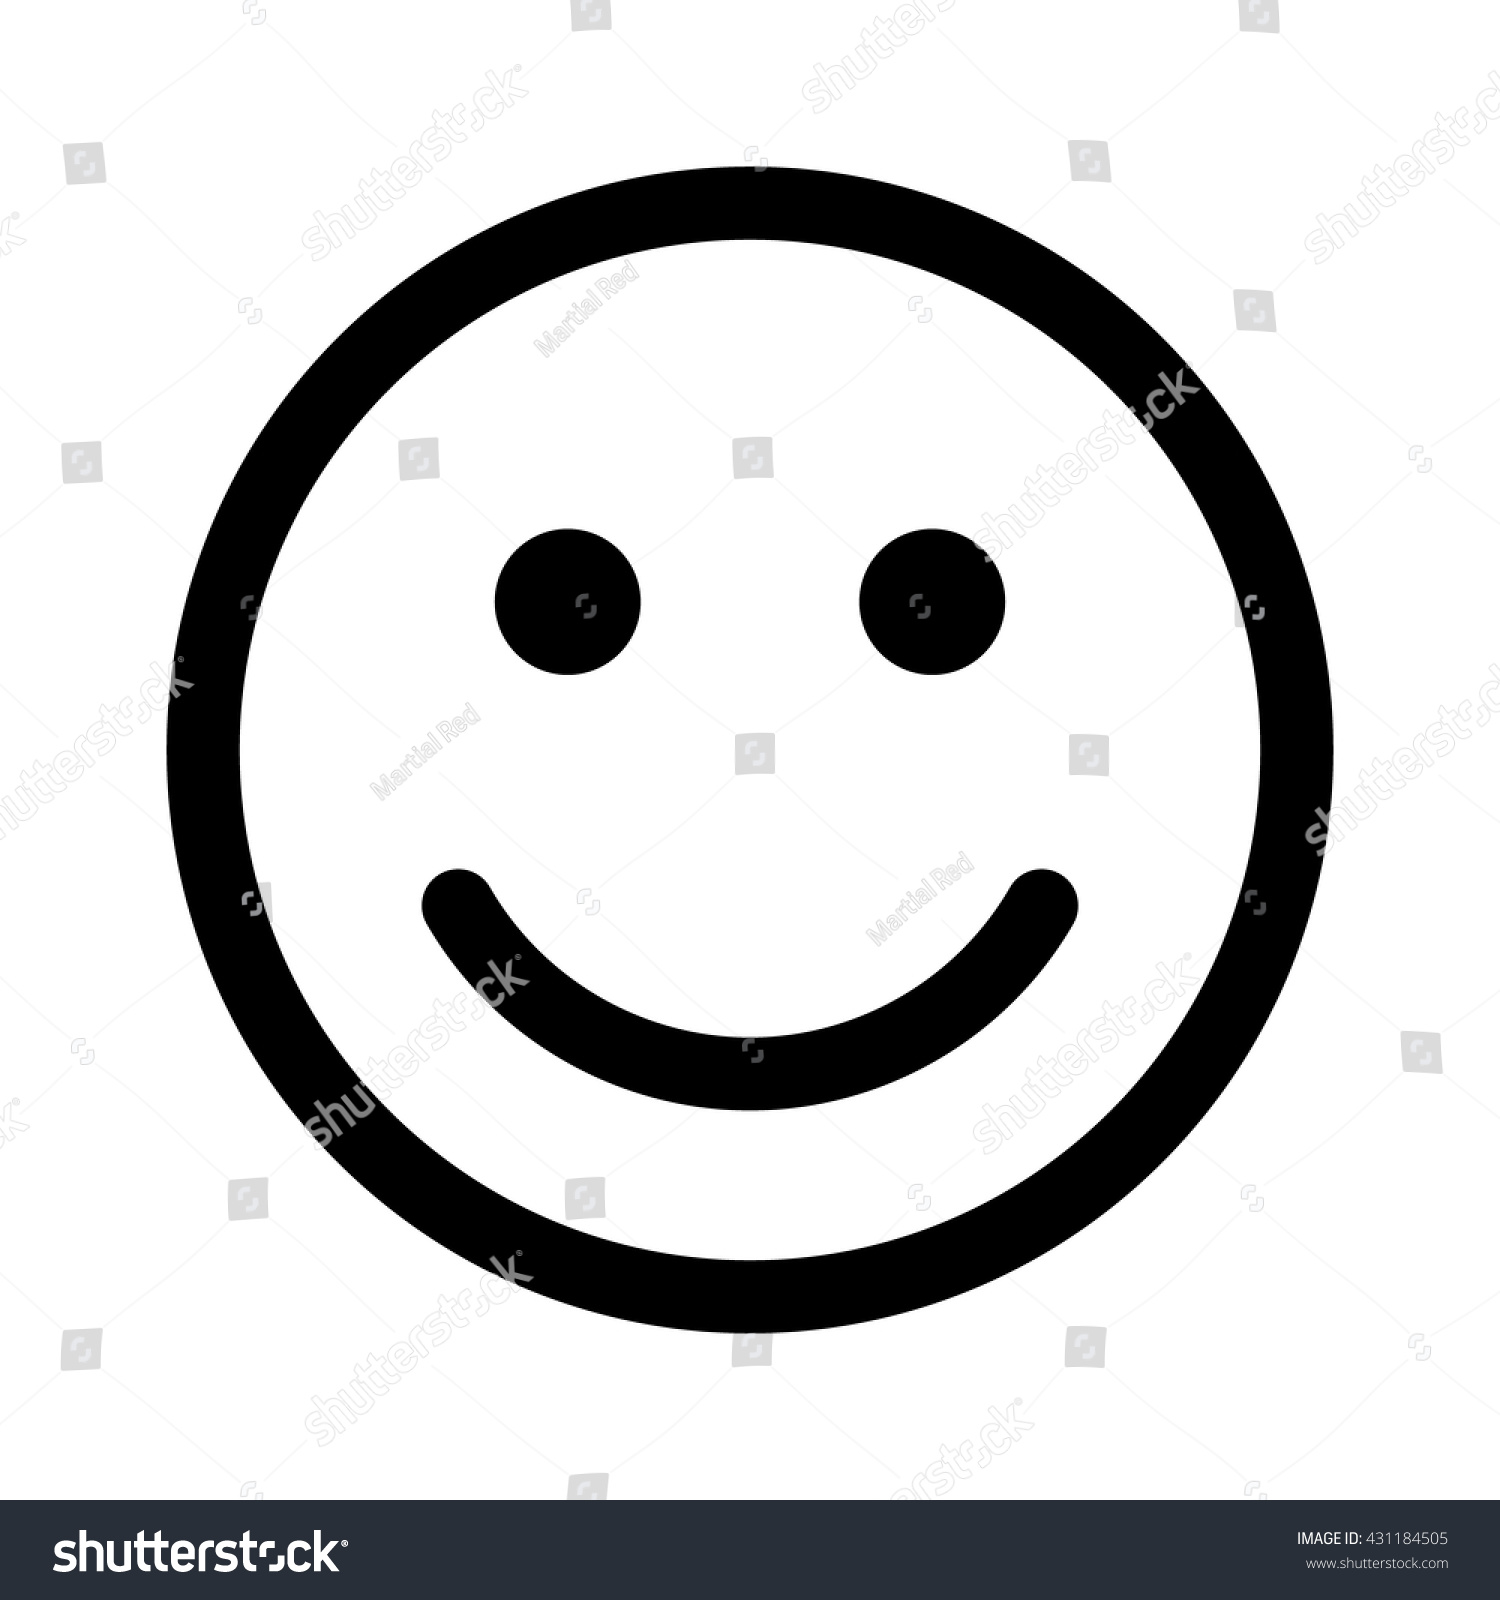 Line Drawing Of Happy Face : Happy smiley face emoticon line art icon for apps and